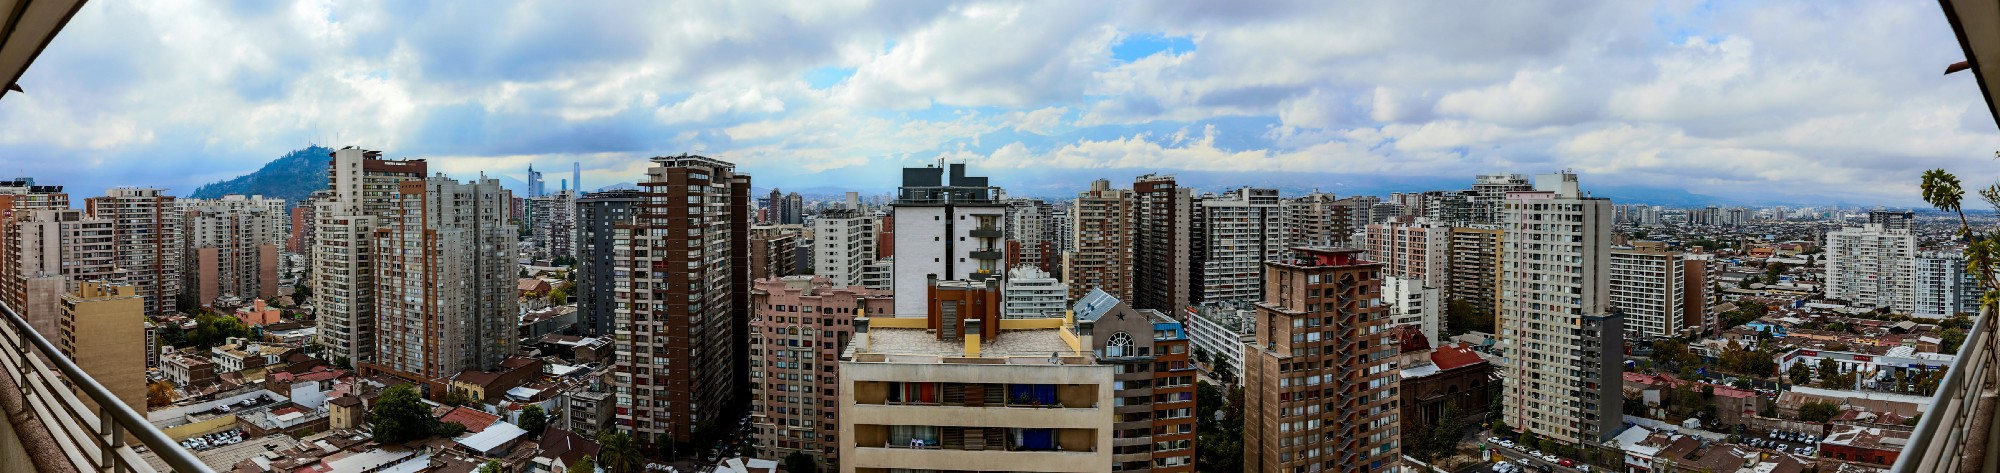 View of the city of Santiago, Chile